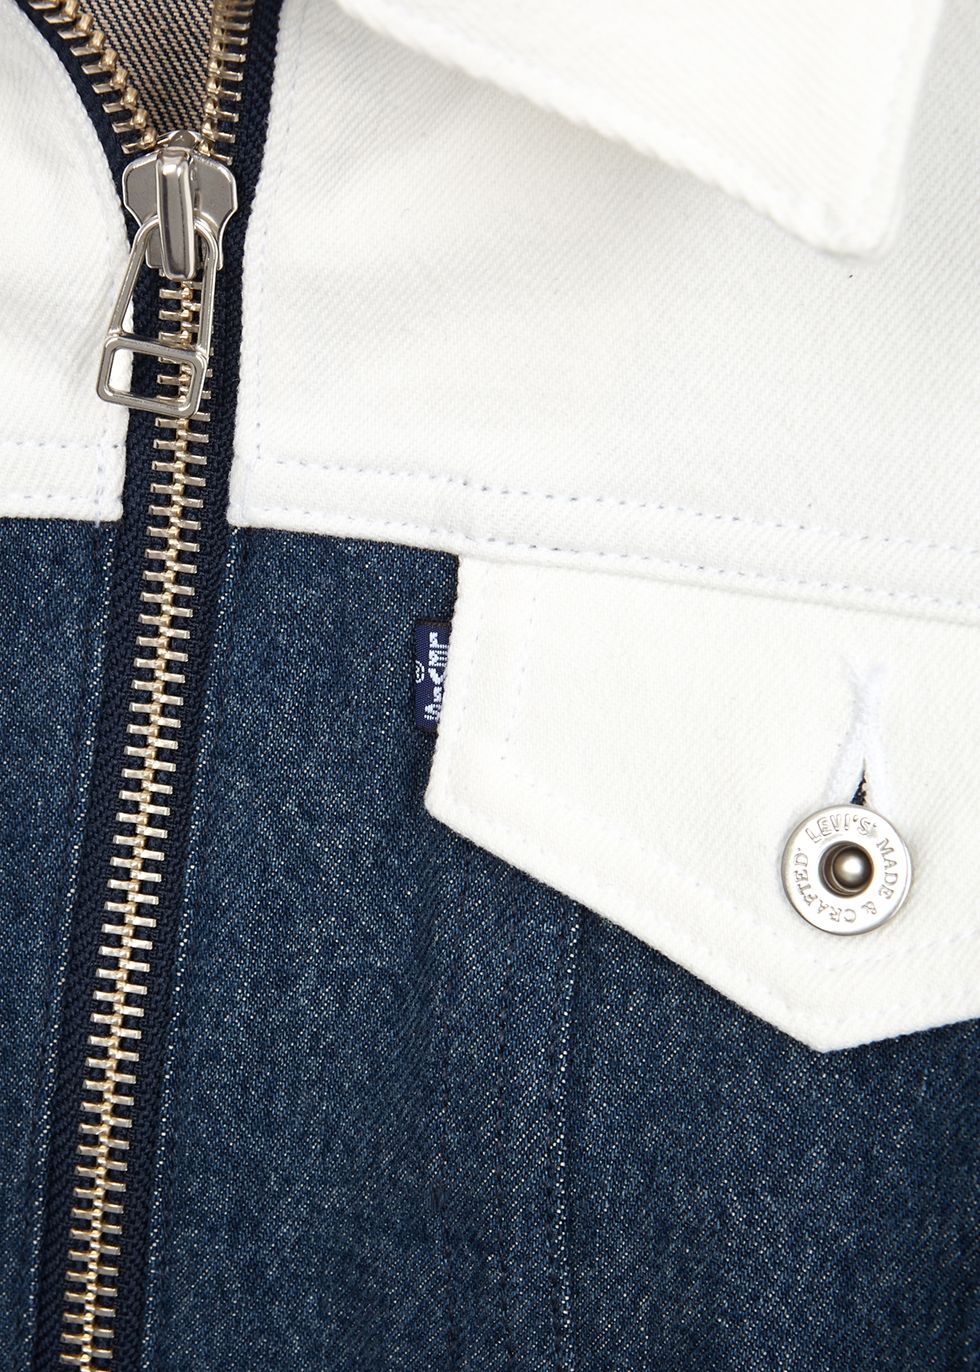 Two-tone stretch-denim jacket - Levi's Made & Crafted